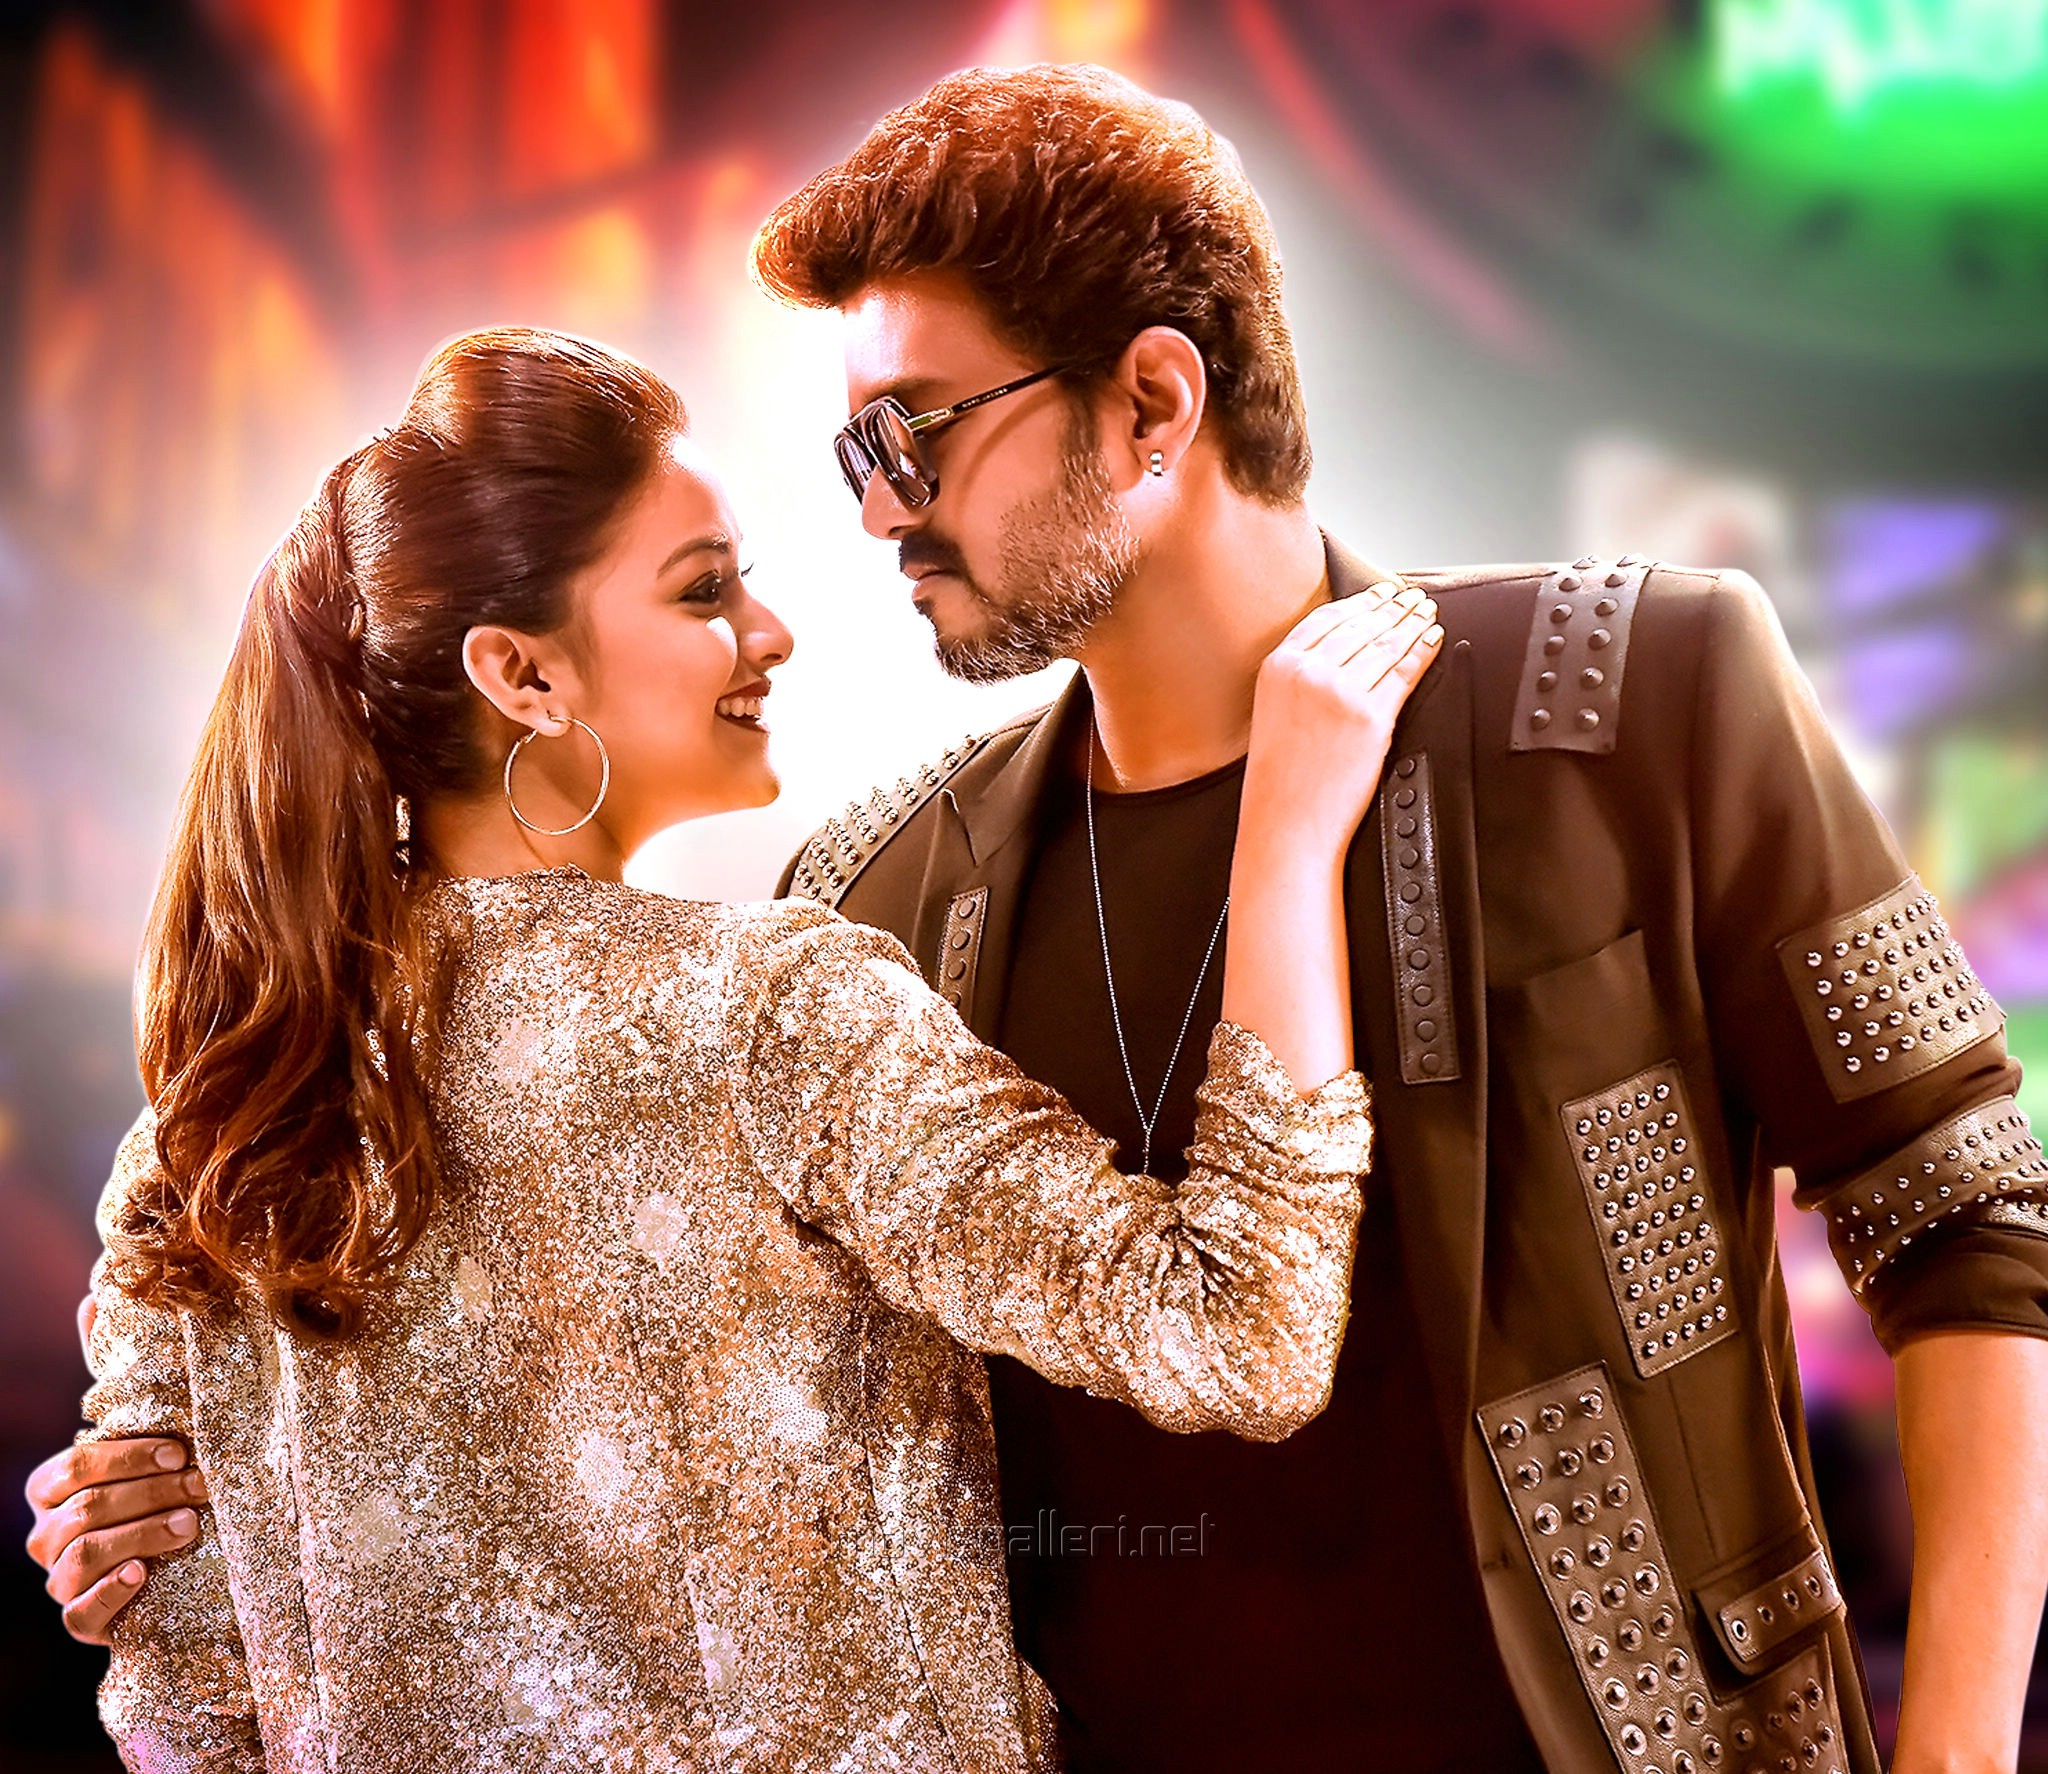 Sarkar Latest Hd Images Vijay Keerthy Suresh New Movie Posters